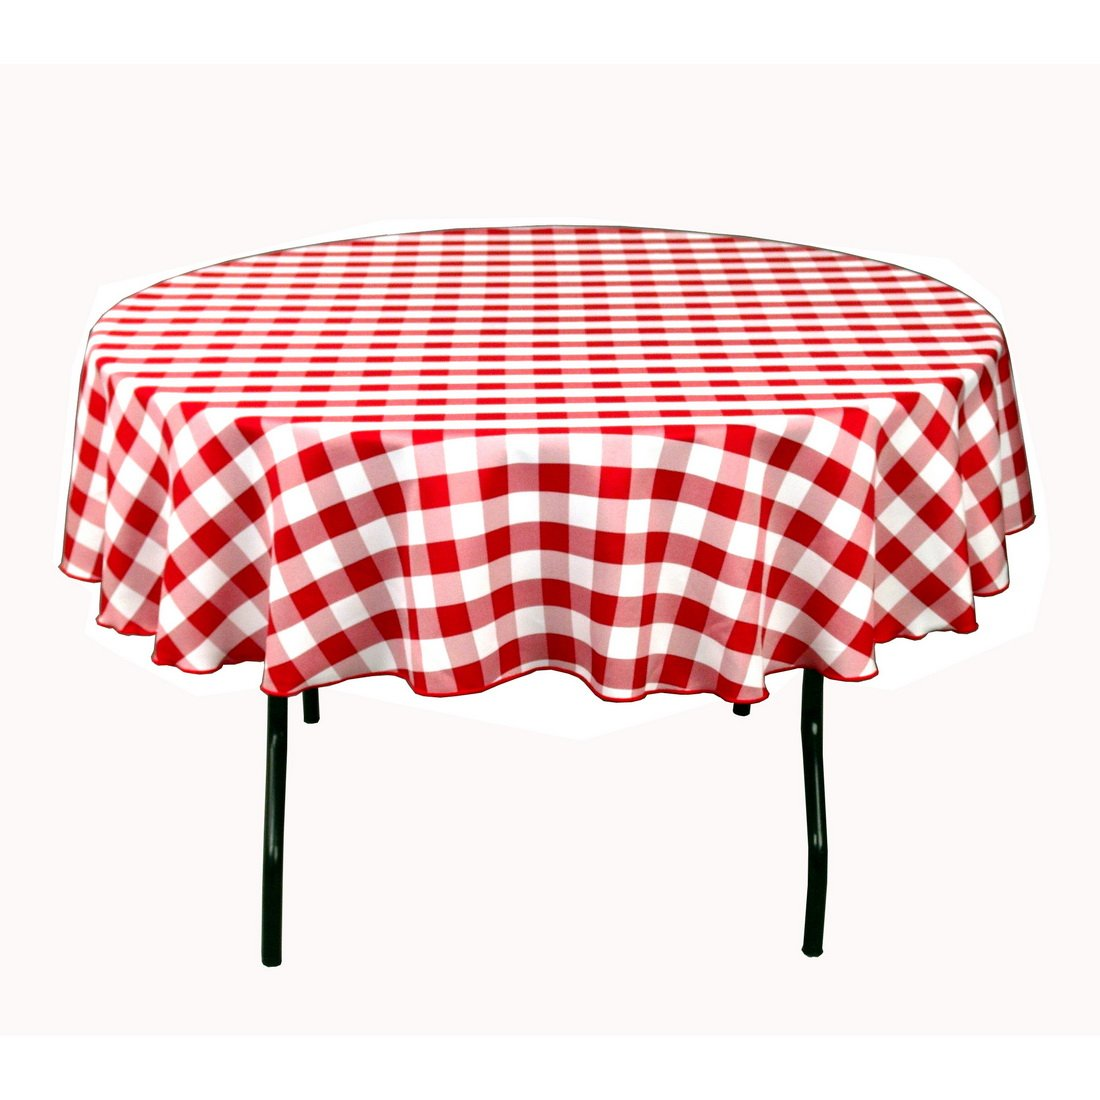 70inch round polyester tablecloth red and white checker new free shipping - Polyester Tablecloths